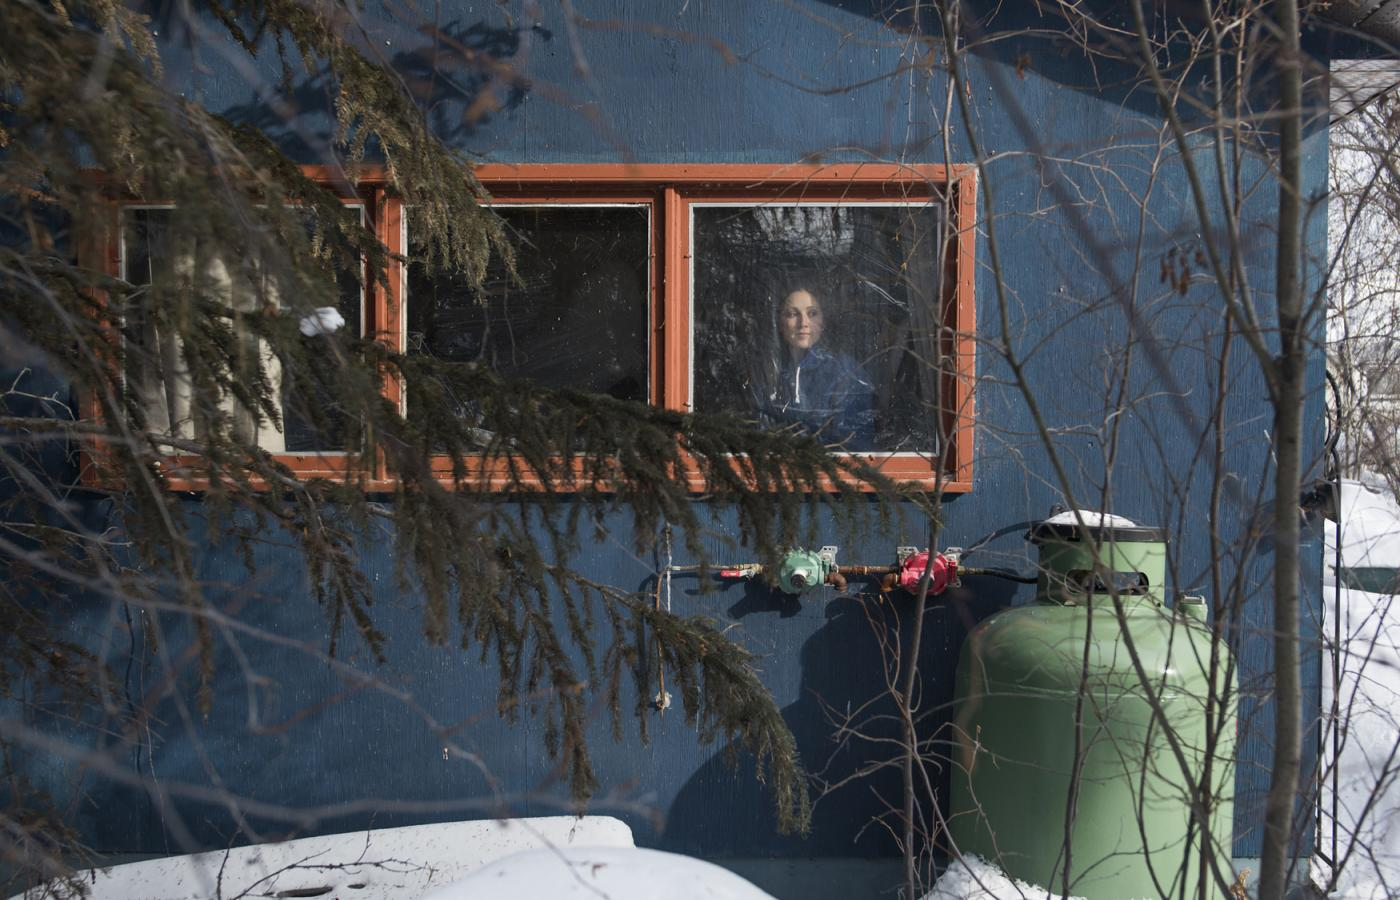 A Northwest Territories resident looks out their snowy cabin window